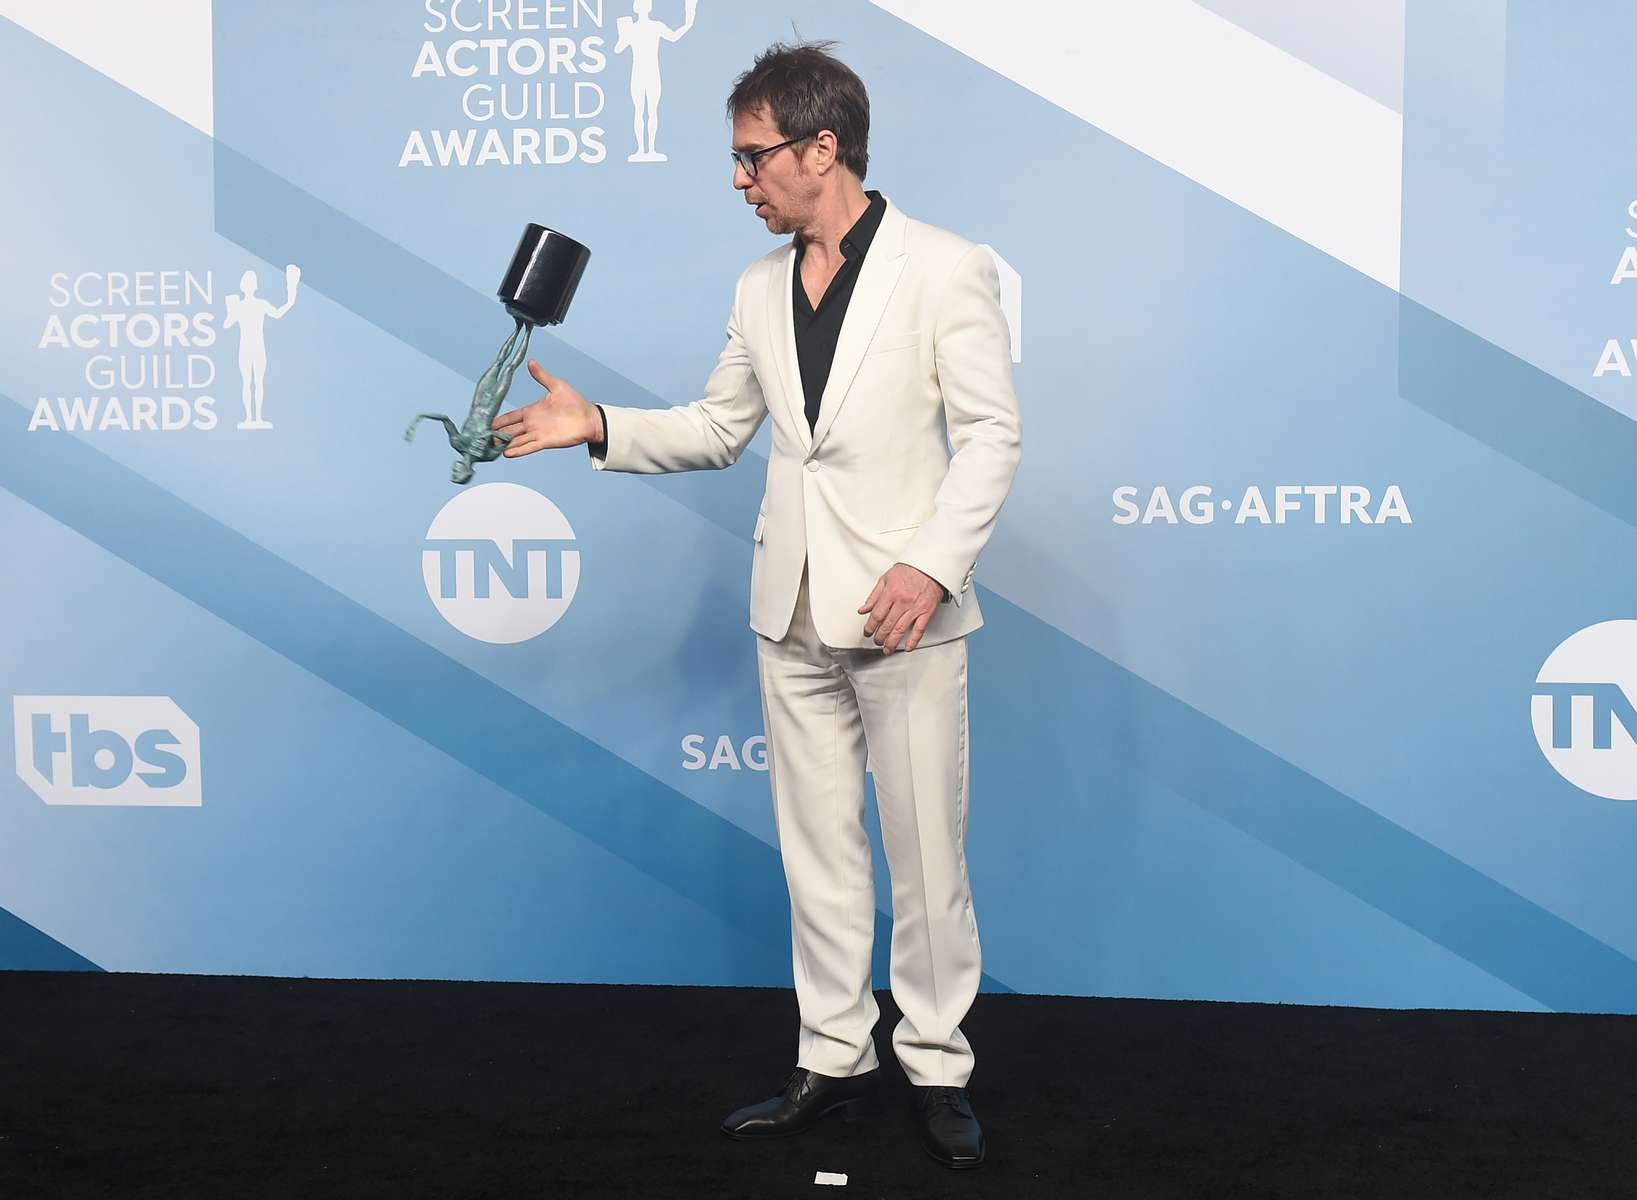 Sam Rockwell flips his award for outstanding performance by a male actor in a television movie or miniseries for {quote}Fosse/Verdon{quote} in the press room at the 26th annual Screen Actors Guild Awards at the Shrine Auditorium & Expo Hall on Sunday, Jan. 19, 2020, in Los Angeles. (Photo by Jordan Strauss/Invision/AP)